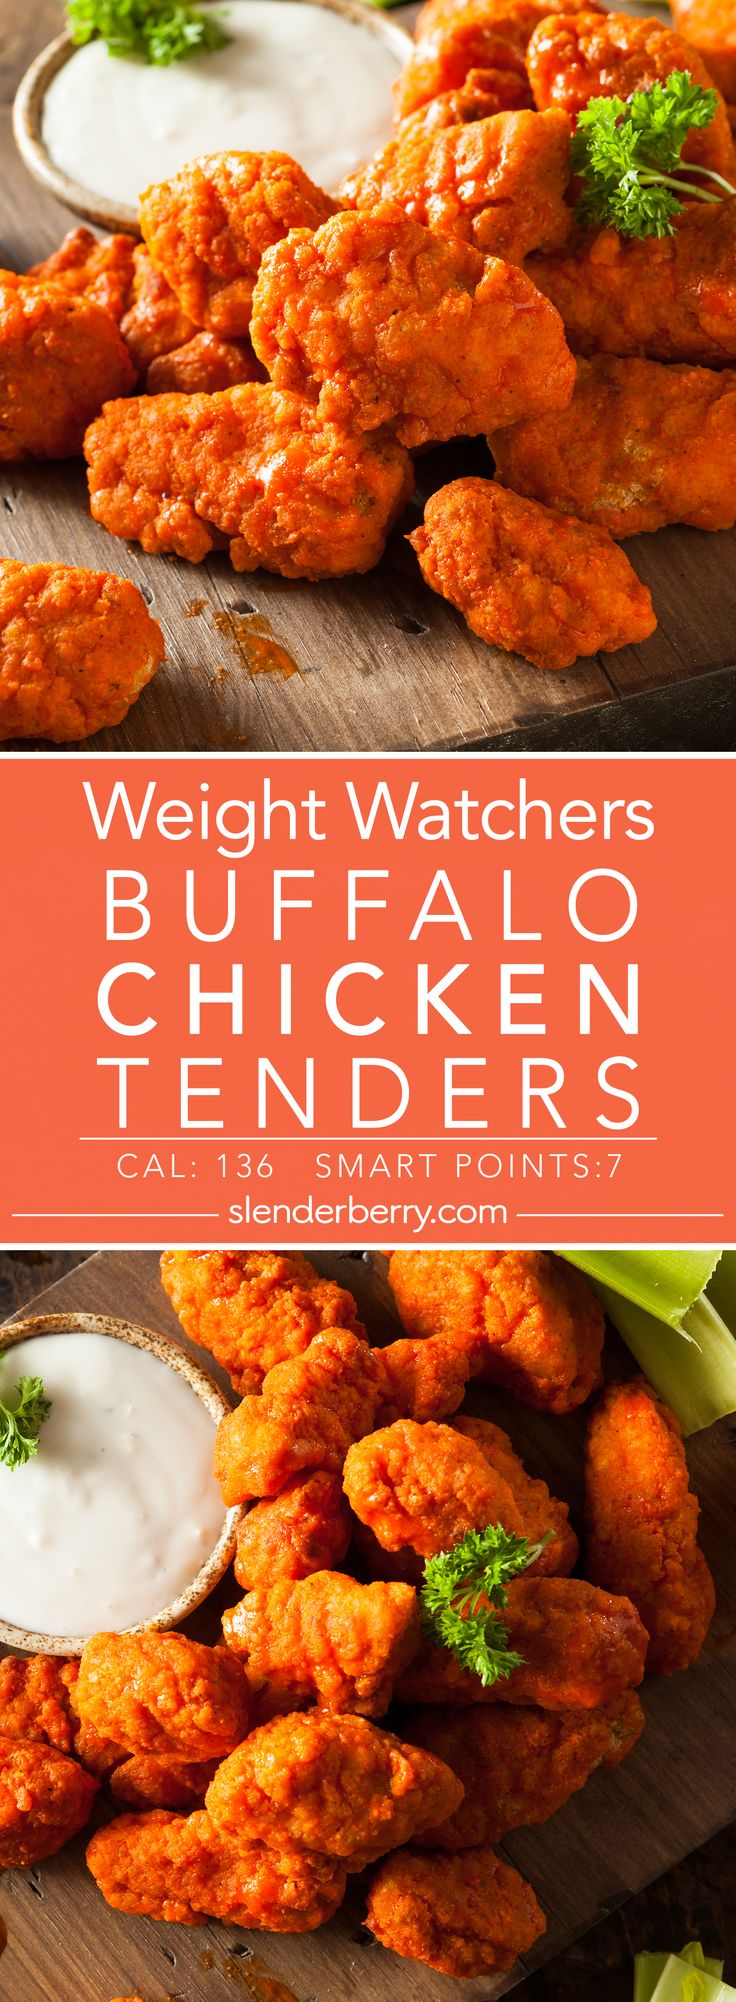 Chicken 65 healthy food kitchen - Best 25 Chicken Tender Recipes Ideas On Pinterest Easy Chicken Tender Recipes Baked Chicken Tenders And Homemade Chicken Strips